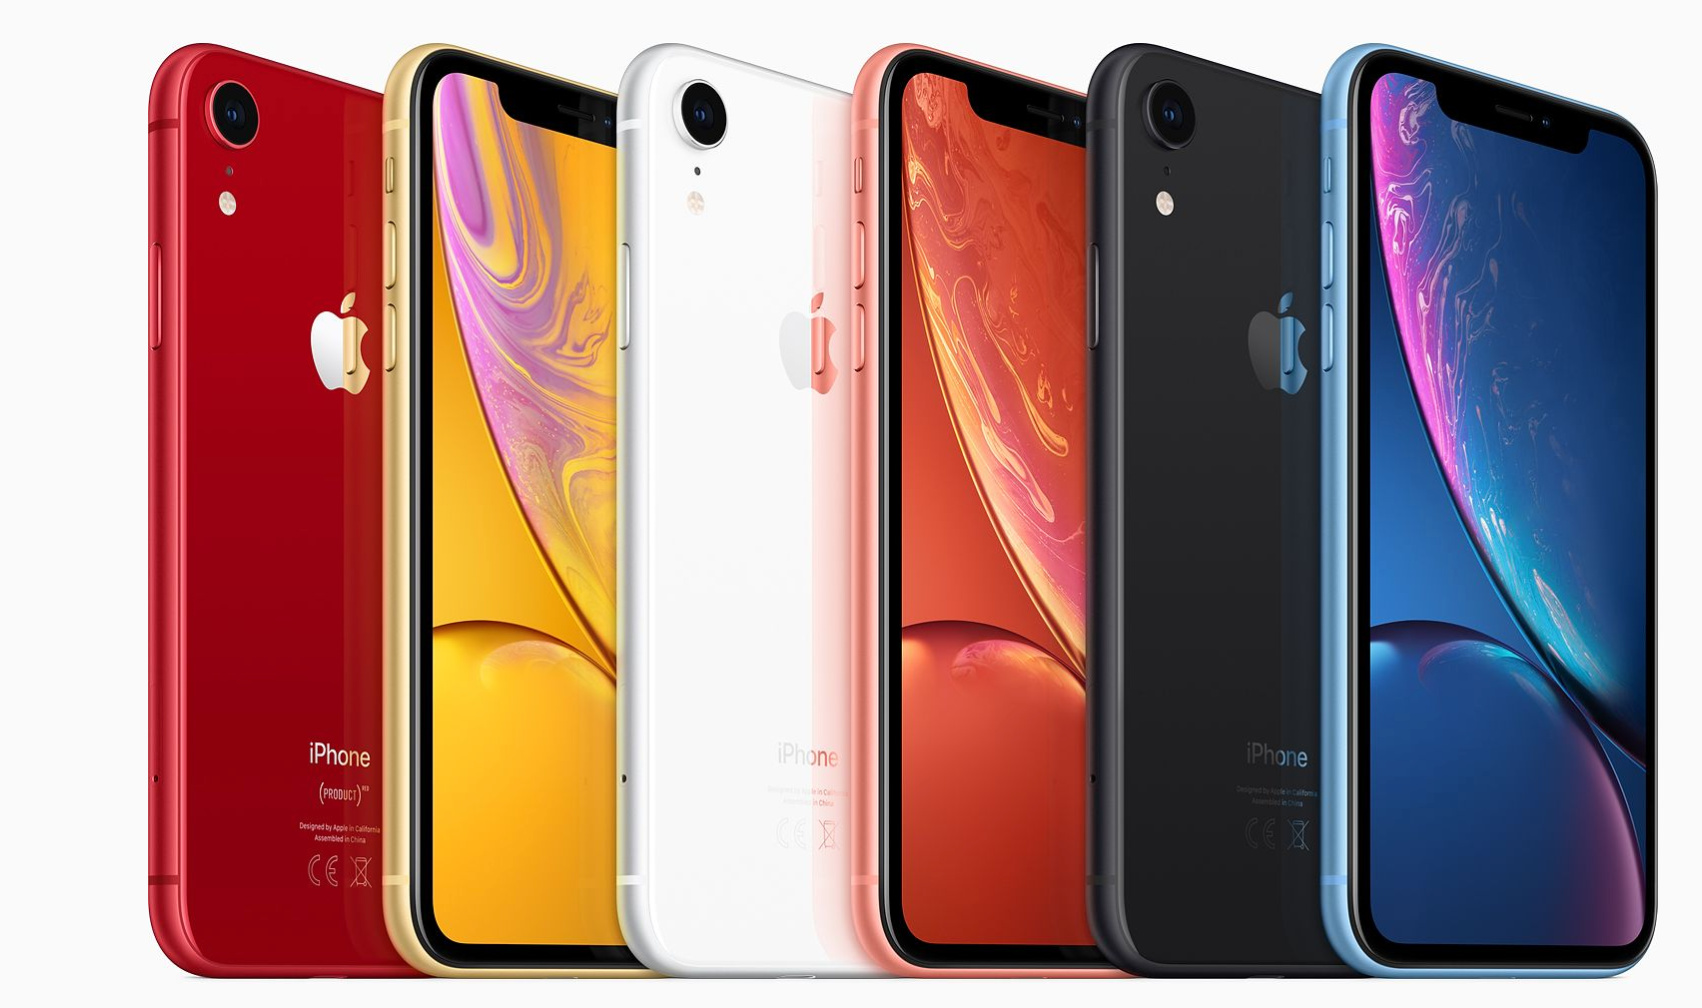 iPhone XR Maroc Marrakech casablanca